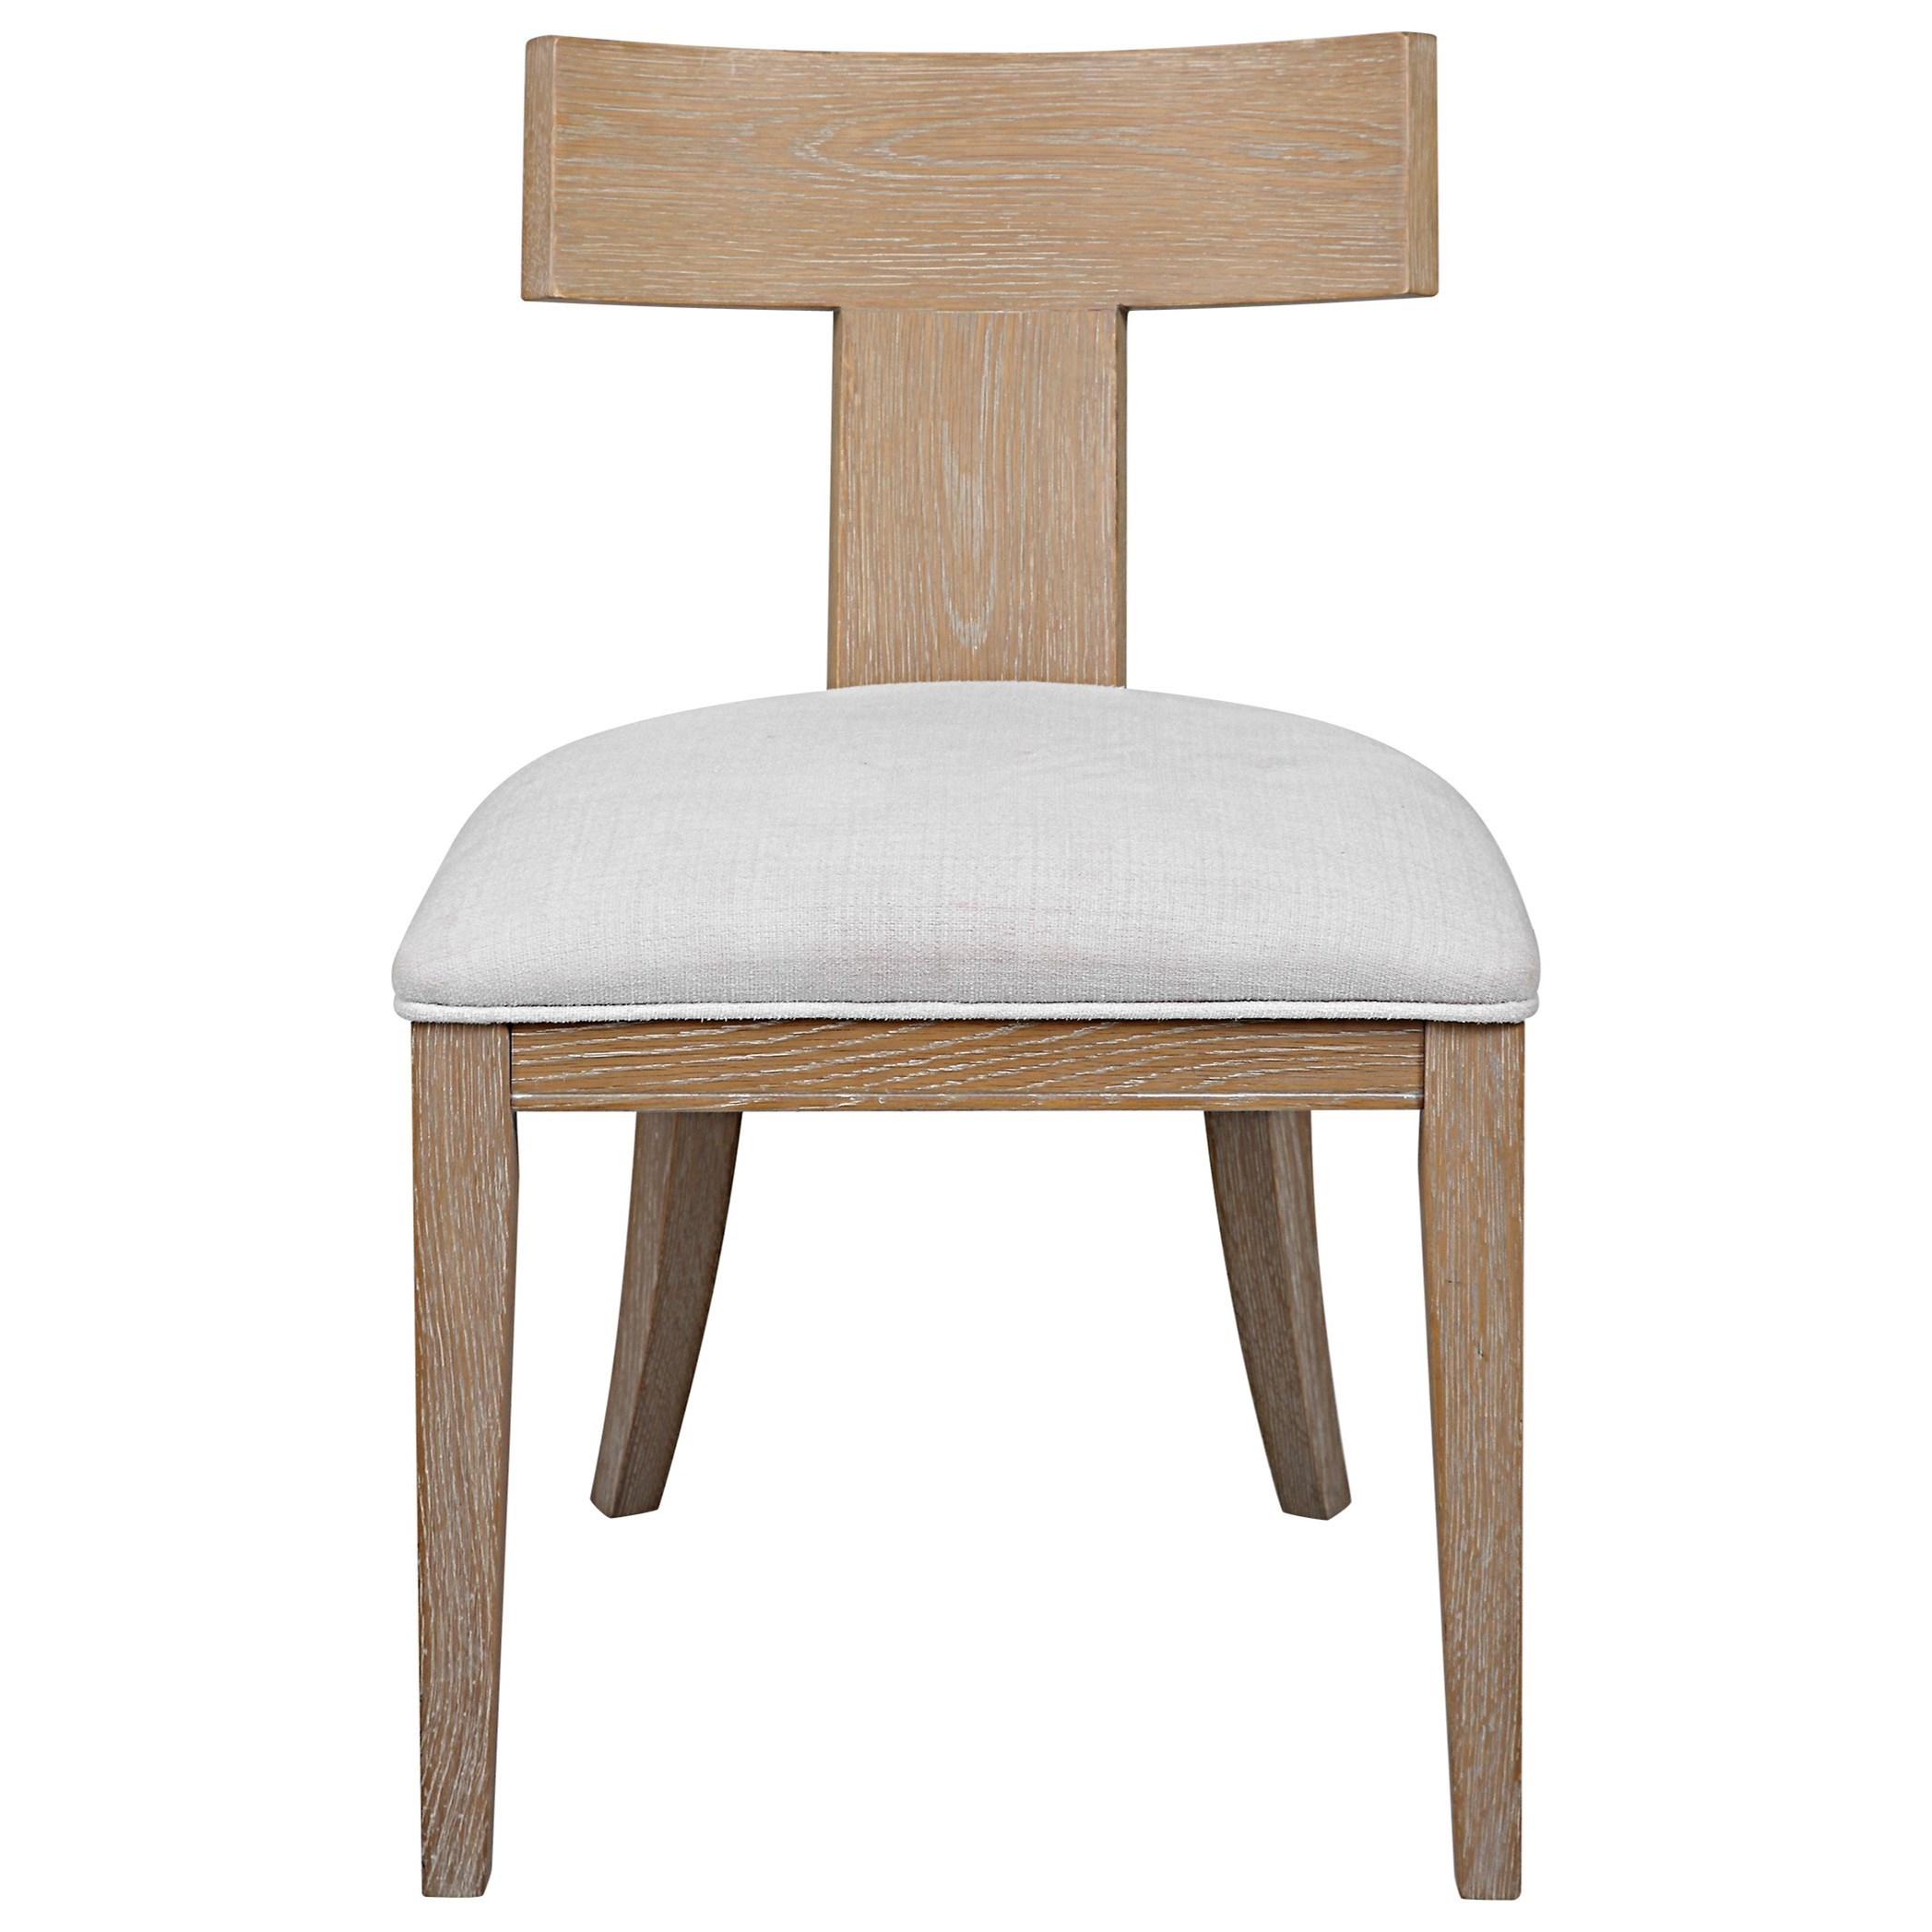 Accent Furniture - Accent Chairs Idris Armless Chair Natural by Uttermost at Mueller Furniture